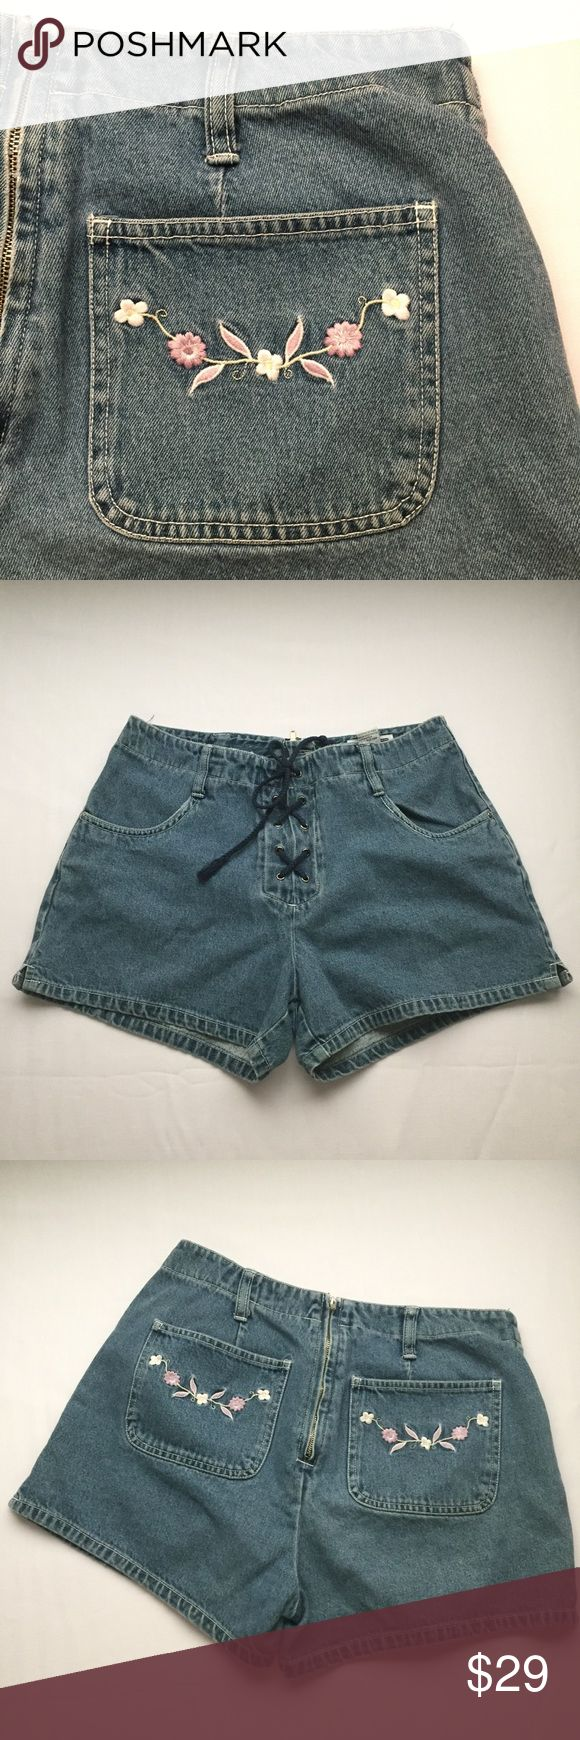 Lace Up Front Shorts Floral Embroidered Size 9 Used in good condition. Pink flowers on the back pockets. Super cute and definitely vintage. Measurements coming soon. Looks like it would fit high rise or high waisted ✨Approximate measurements (laying flat)✨ Waist: 13.5in Rise: 10.75in Xhilaration Shorts Jean Shorts